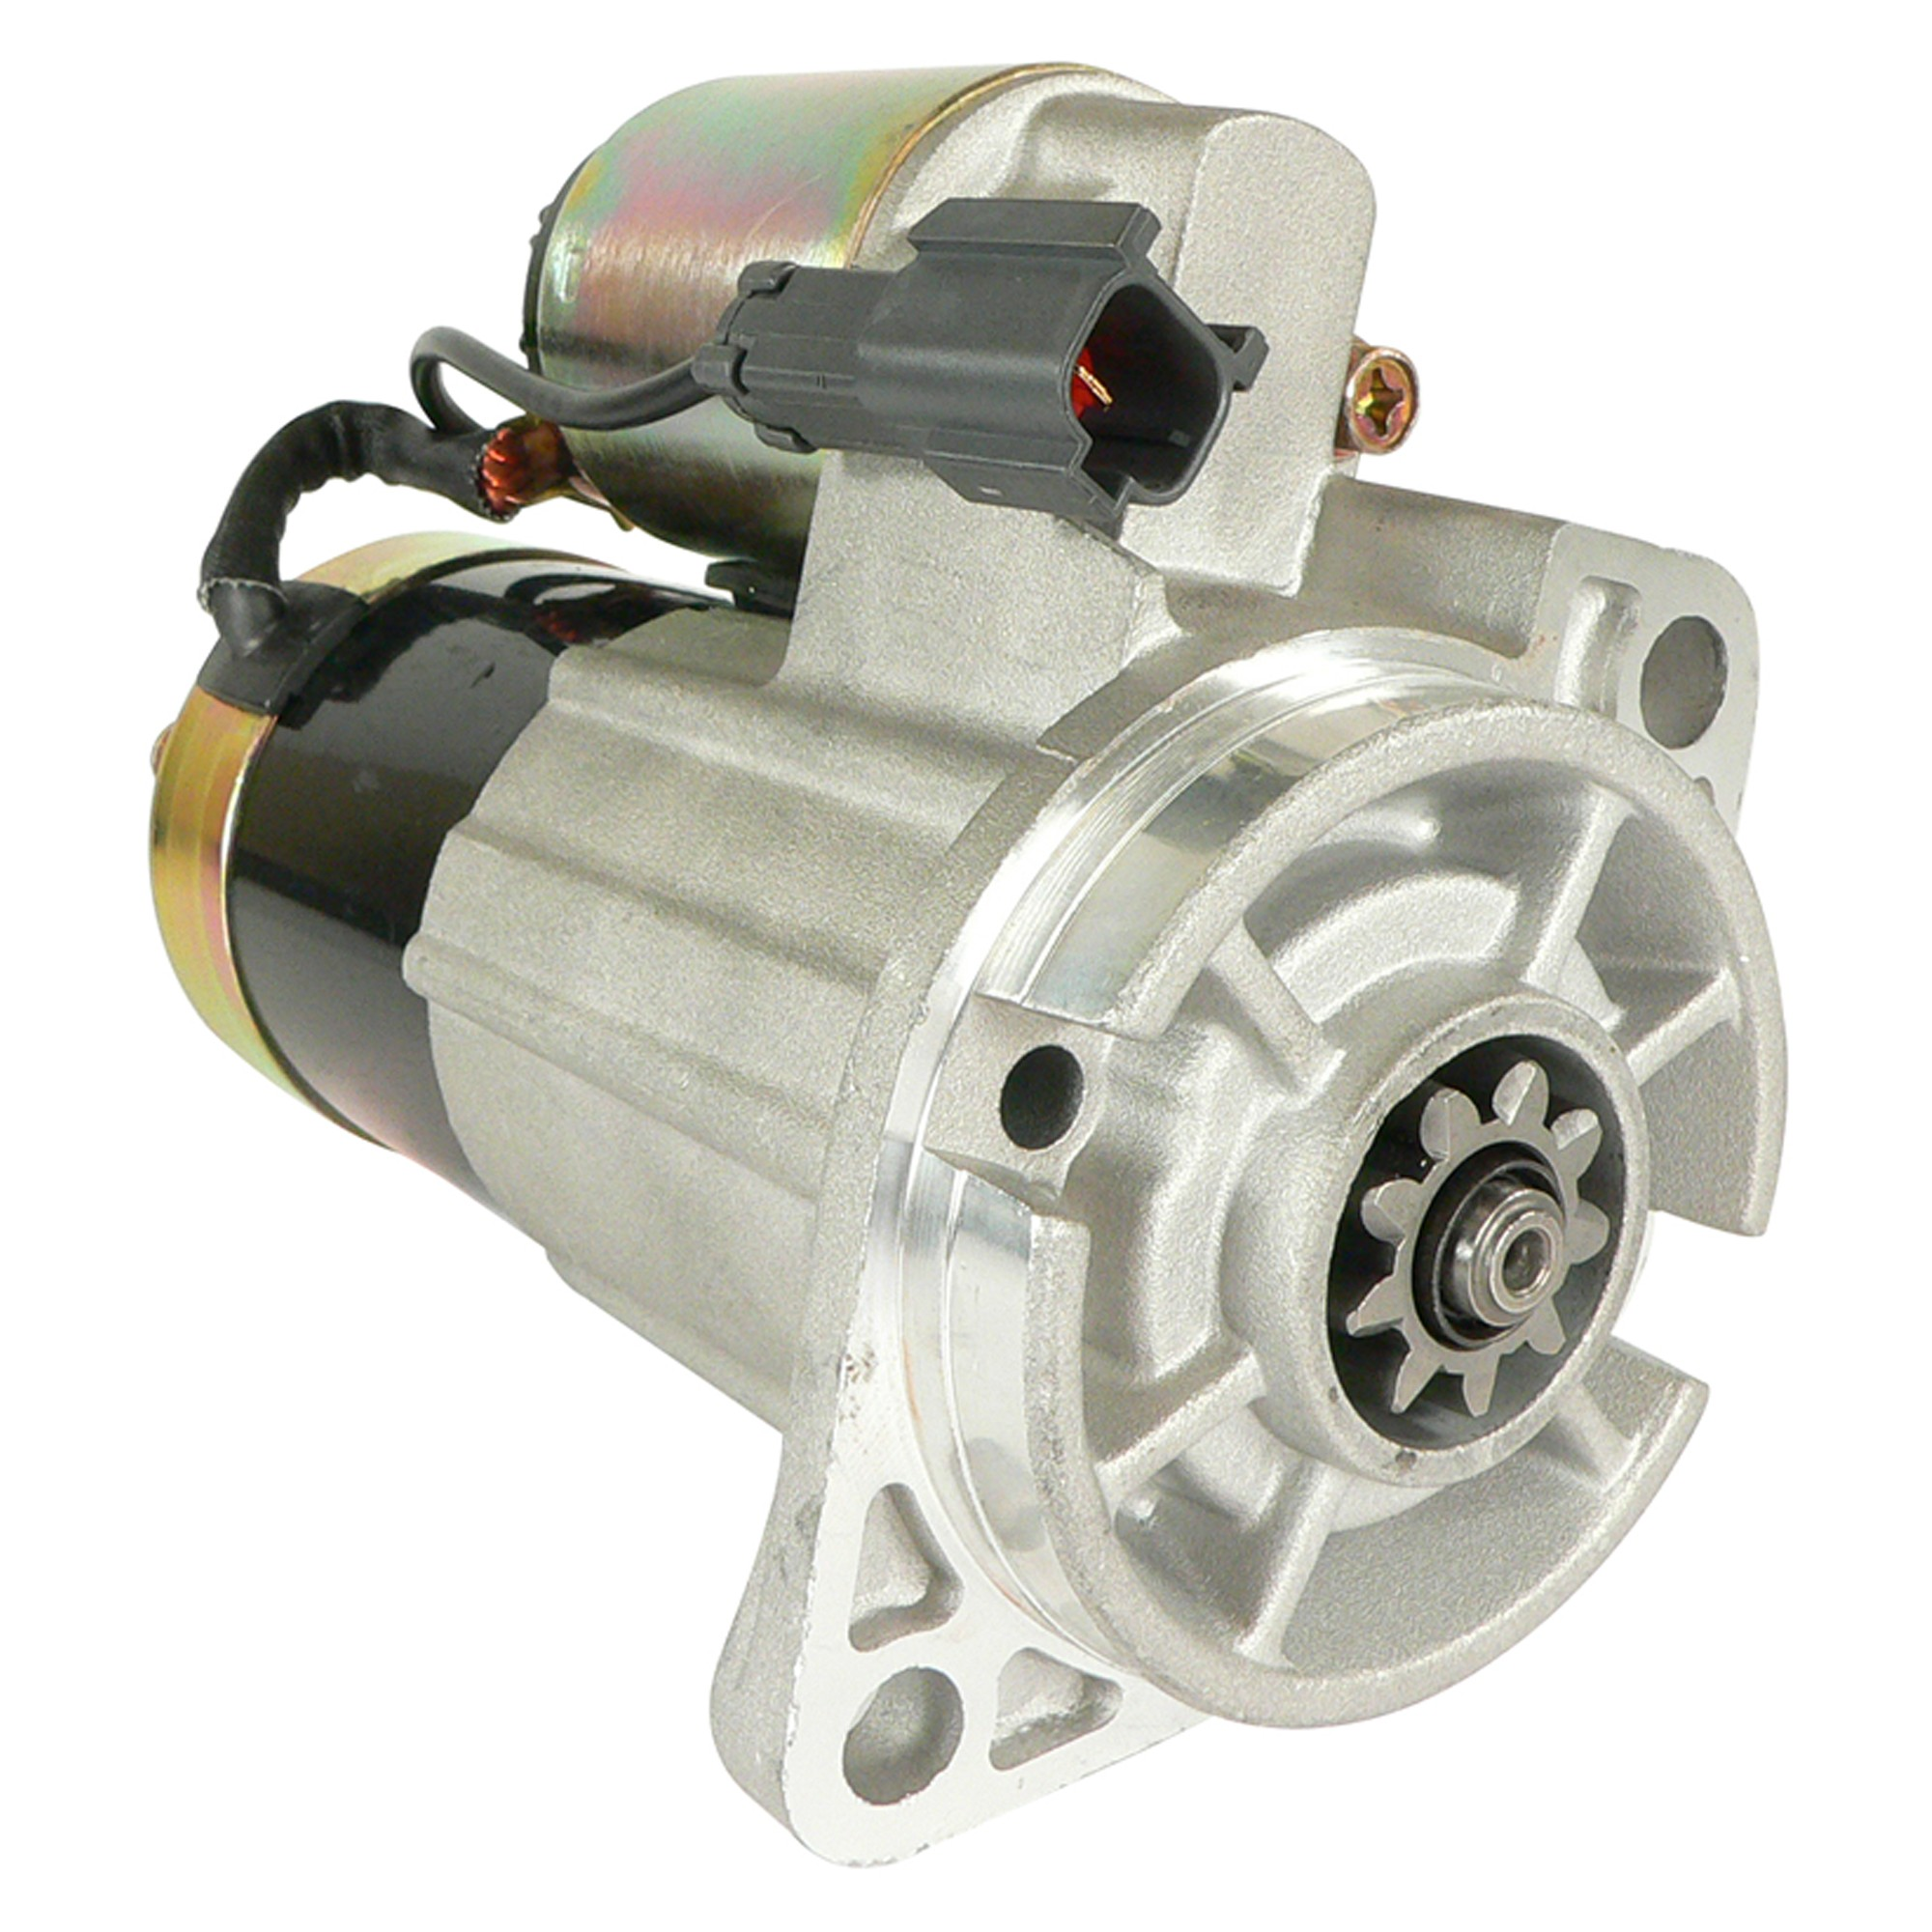 NEW STARTER FOR NISSAN INDUSTRIAL M0T65381 M0T65581 23300-GS20A 23300-F4U010